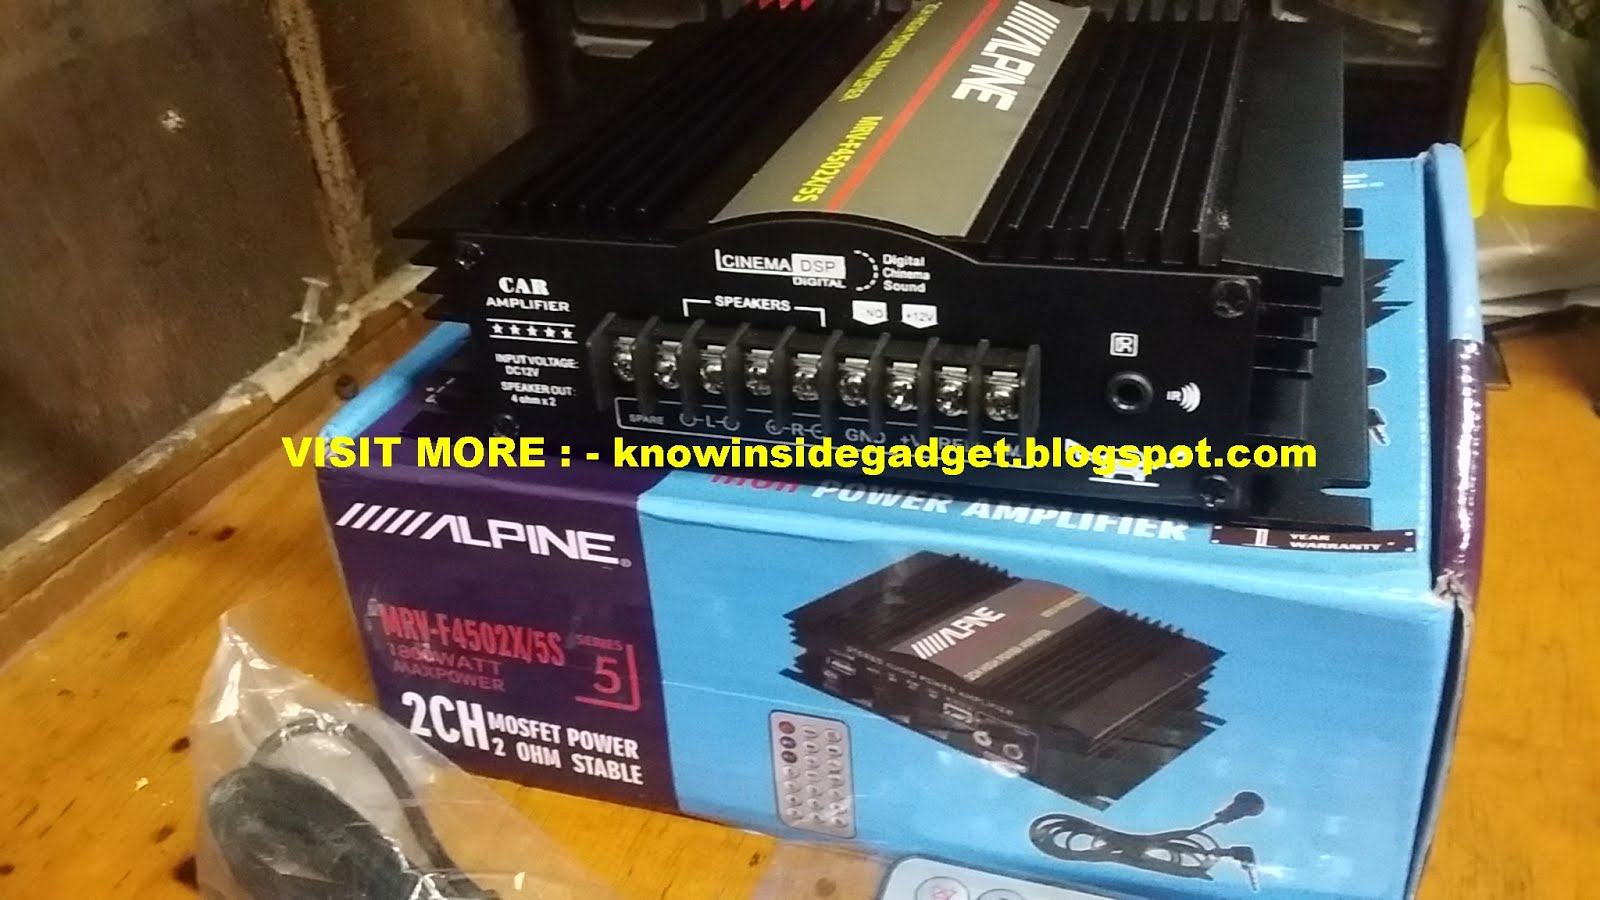 What Inside These Stuff August 2018 Fig2 Bridged Amplifier 35w 8 Dual Channel Car With Usb Sd Card Fm And Remote Control Specifications Two For Input